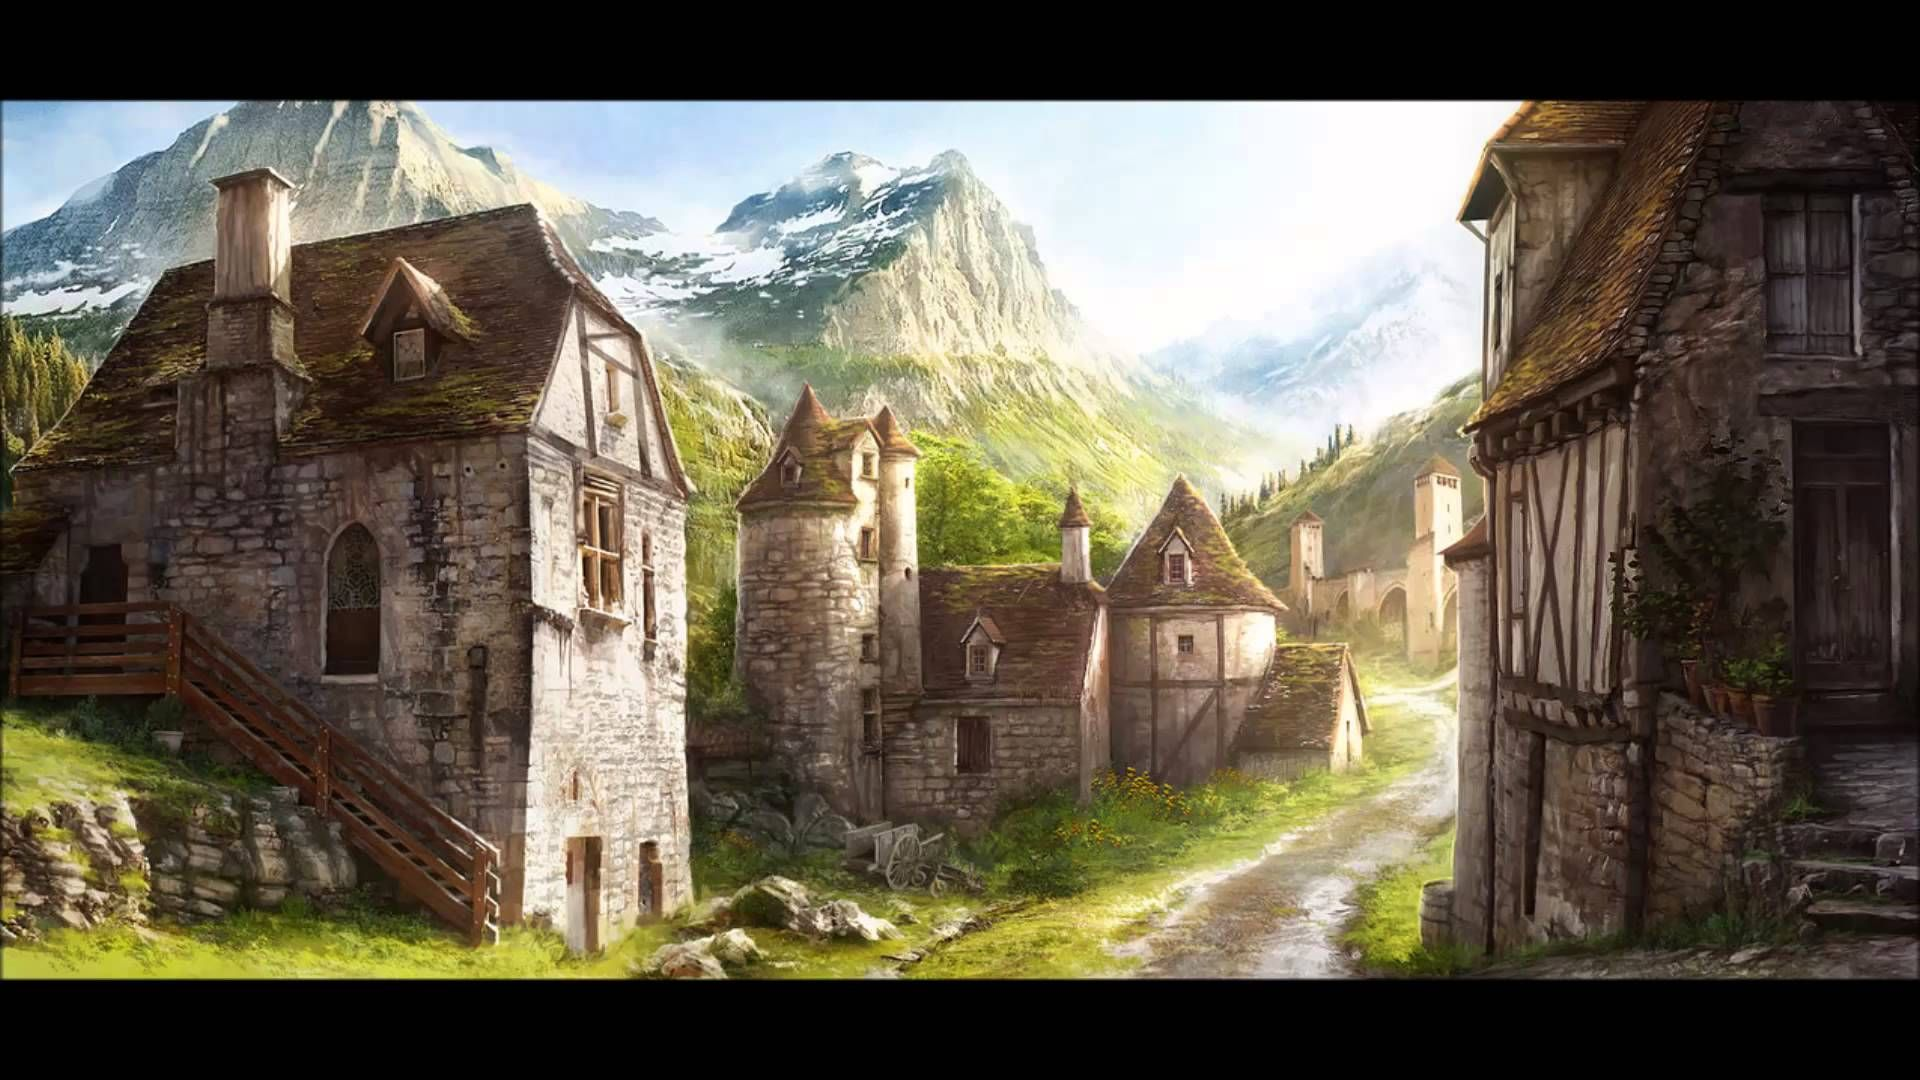 Ambient Medieval/Fantasy Town Sounds (Put on Loop